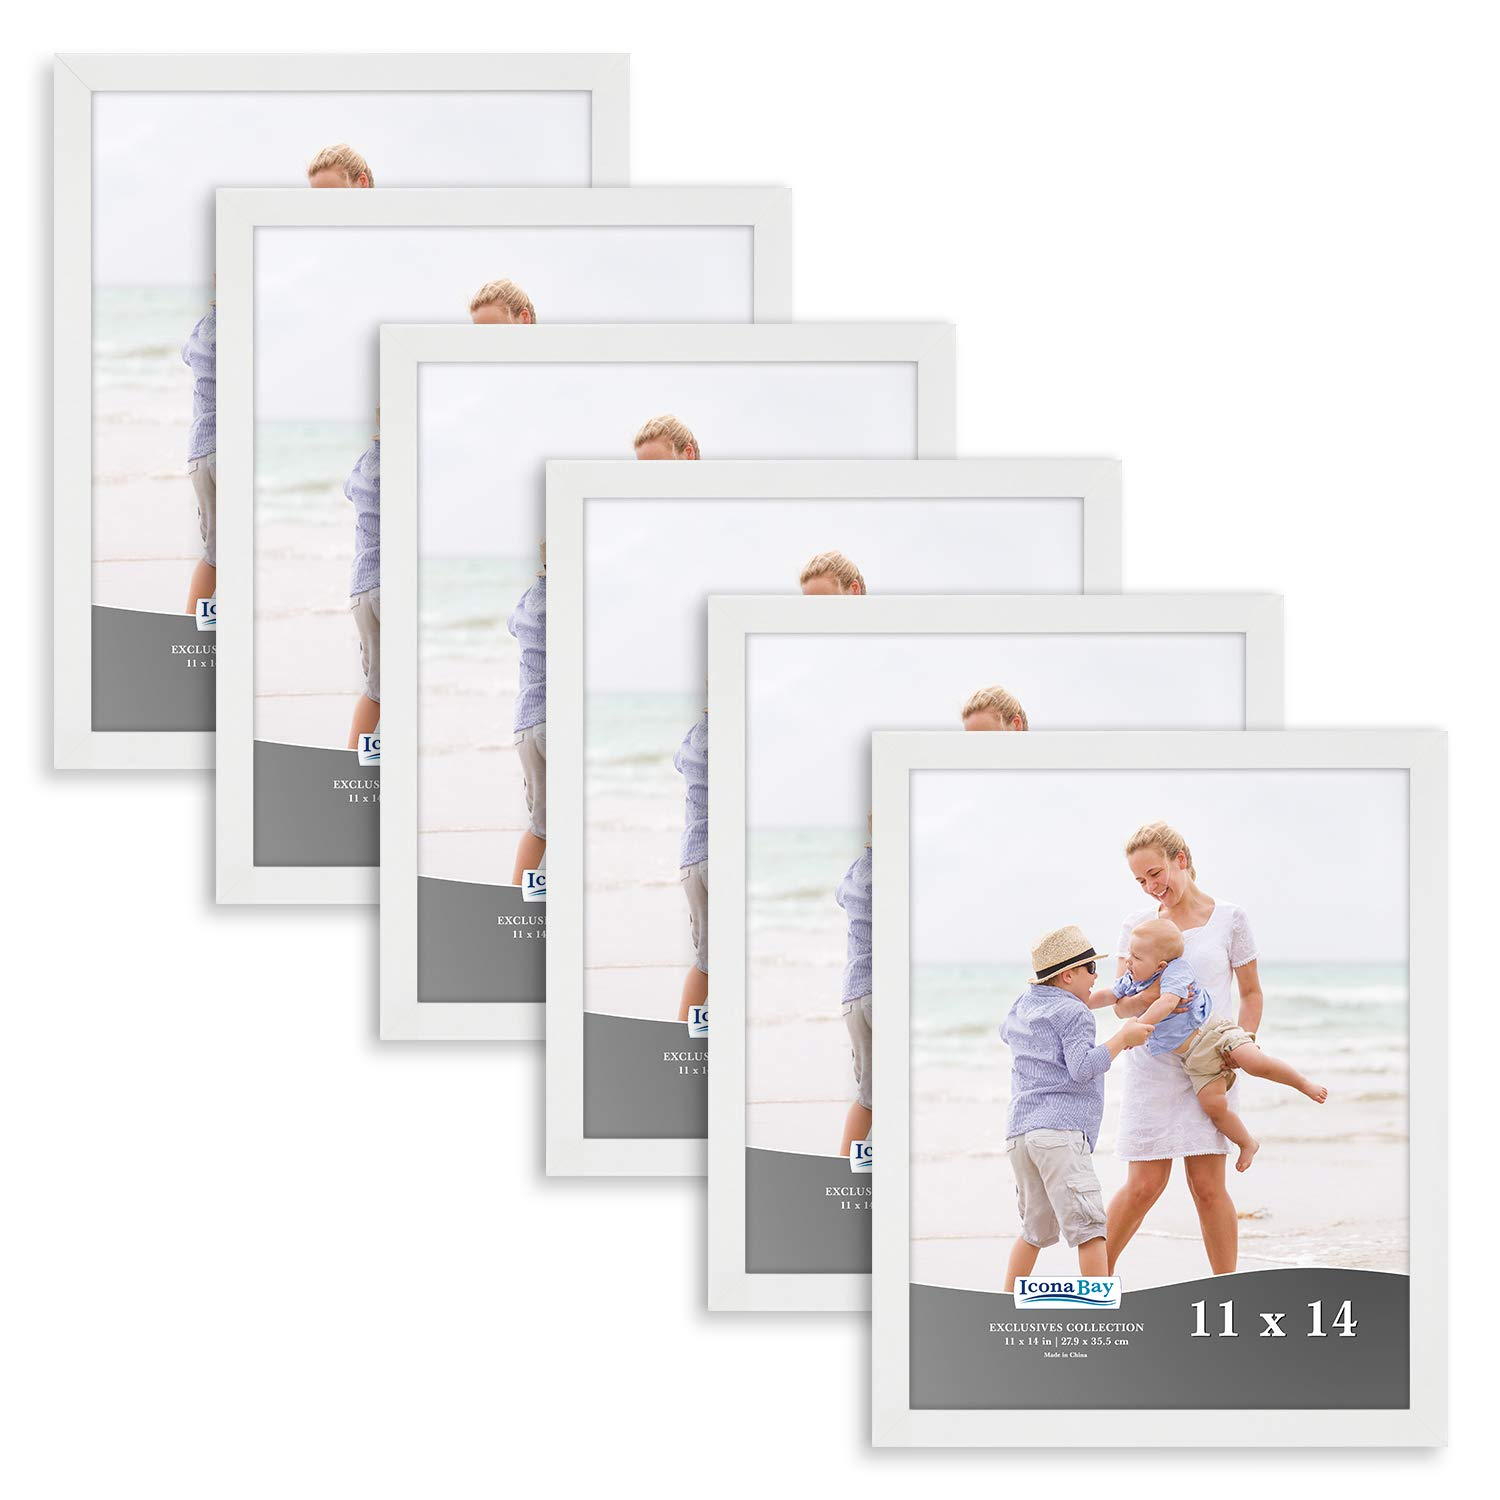 Icona Bay 11x14 Picture Frame (6 Pack, White), White Sturdy Wood Composite Photo Frame 11 x 14, Wall or Table Mount, Set of 6 Exclusives Collection by Icona Bay